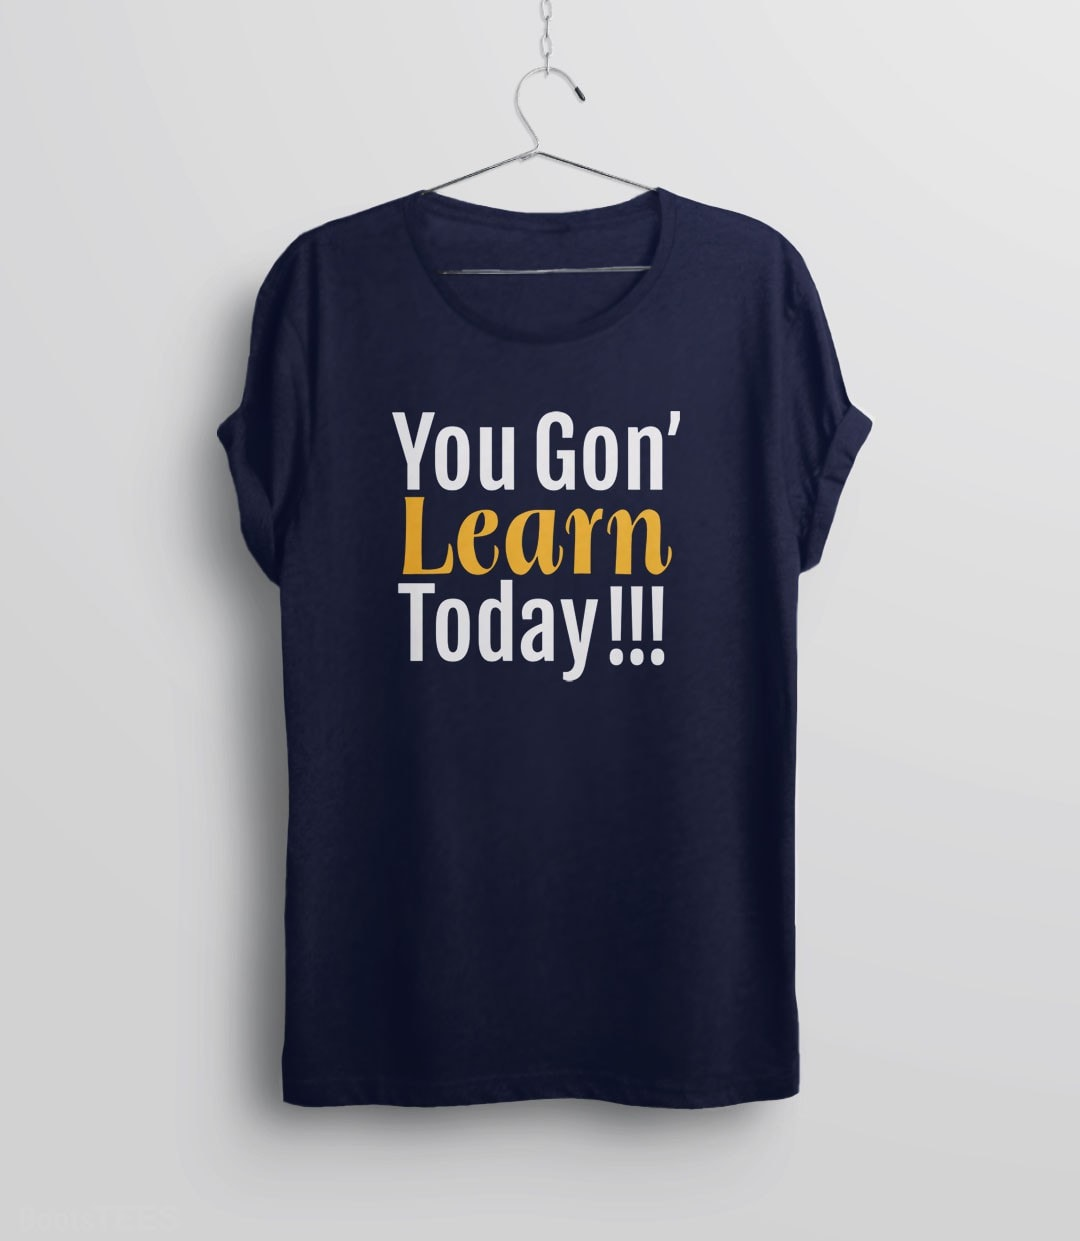 You Gon' Learn Today | funny teacher humor t-shirt - unisex tee